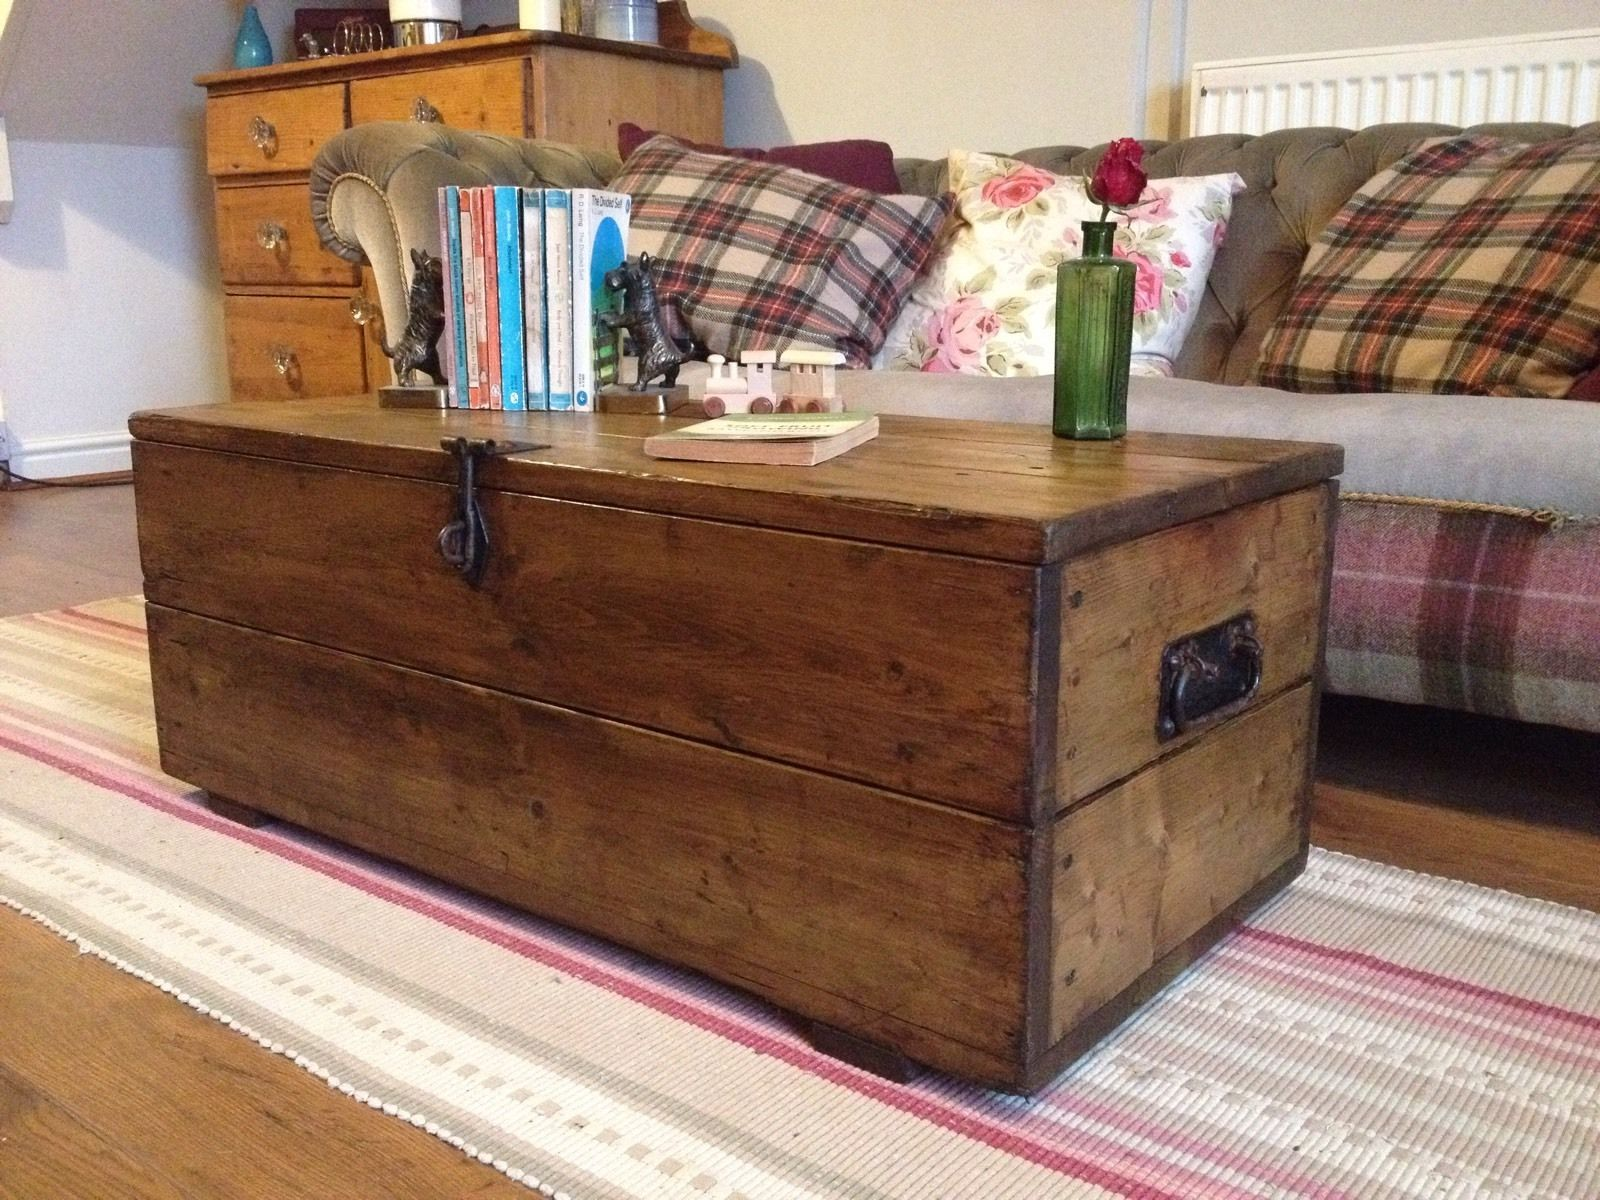 Old Rustic Pine Box Vintage Wooden Chest Coffee Table Toy Or Storage Trunk Ebay